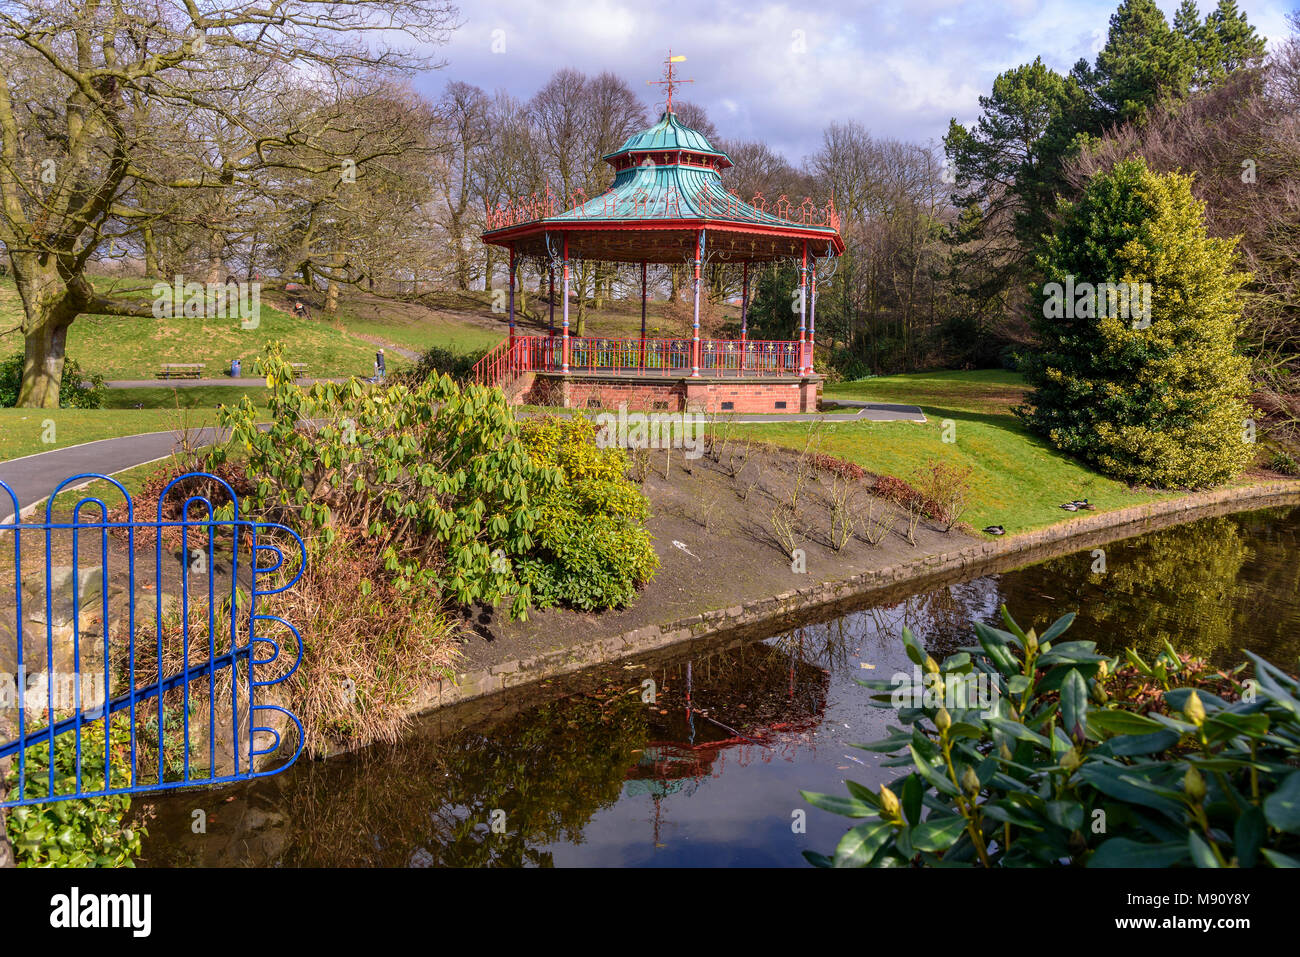 The bandstand in Sefton Park Liverpool. - Stock Image